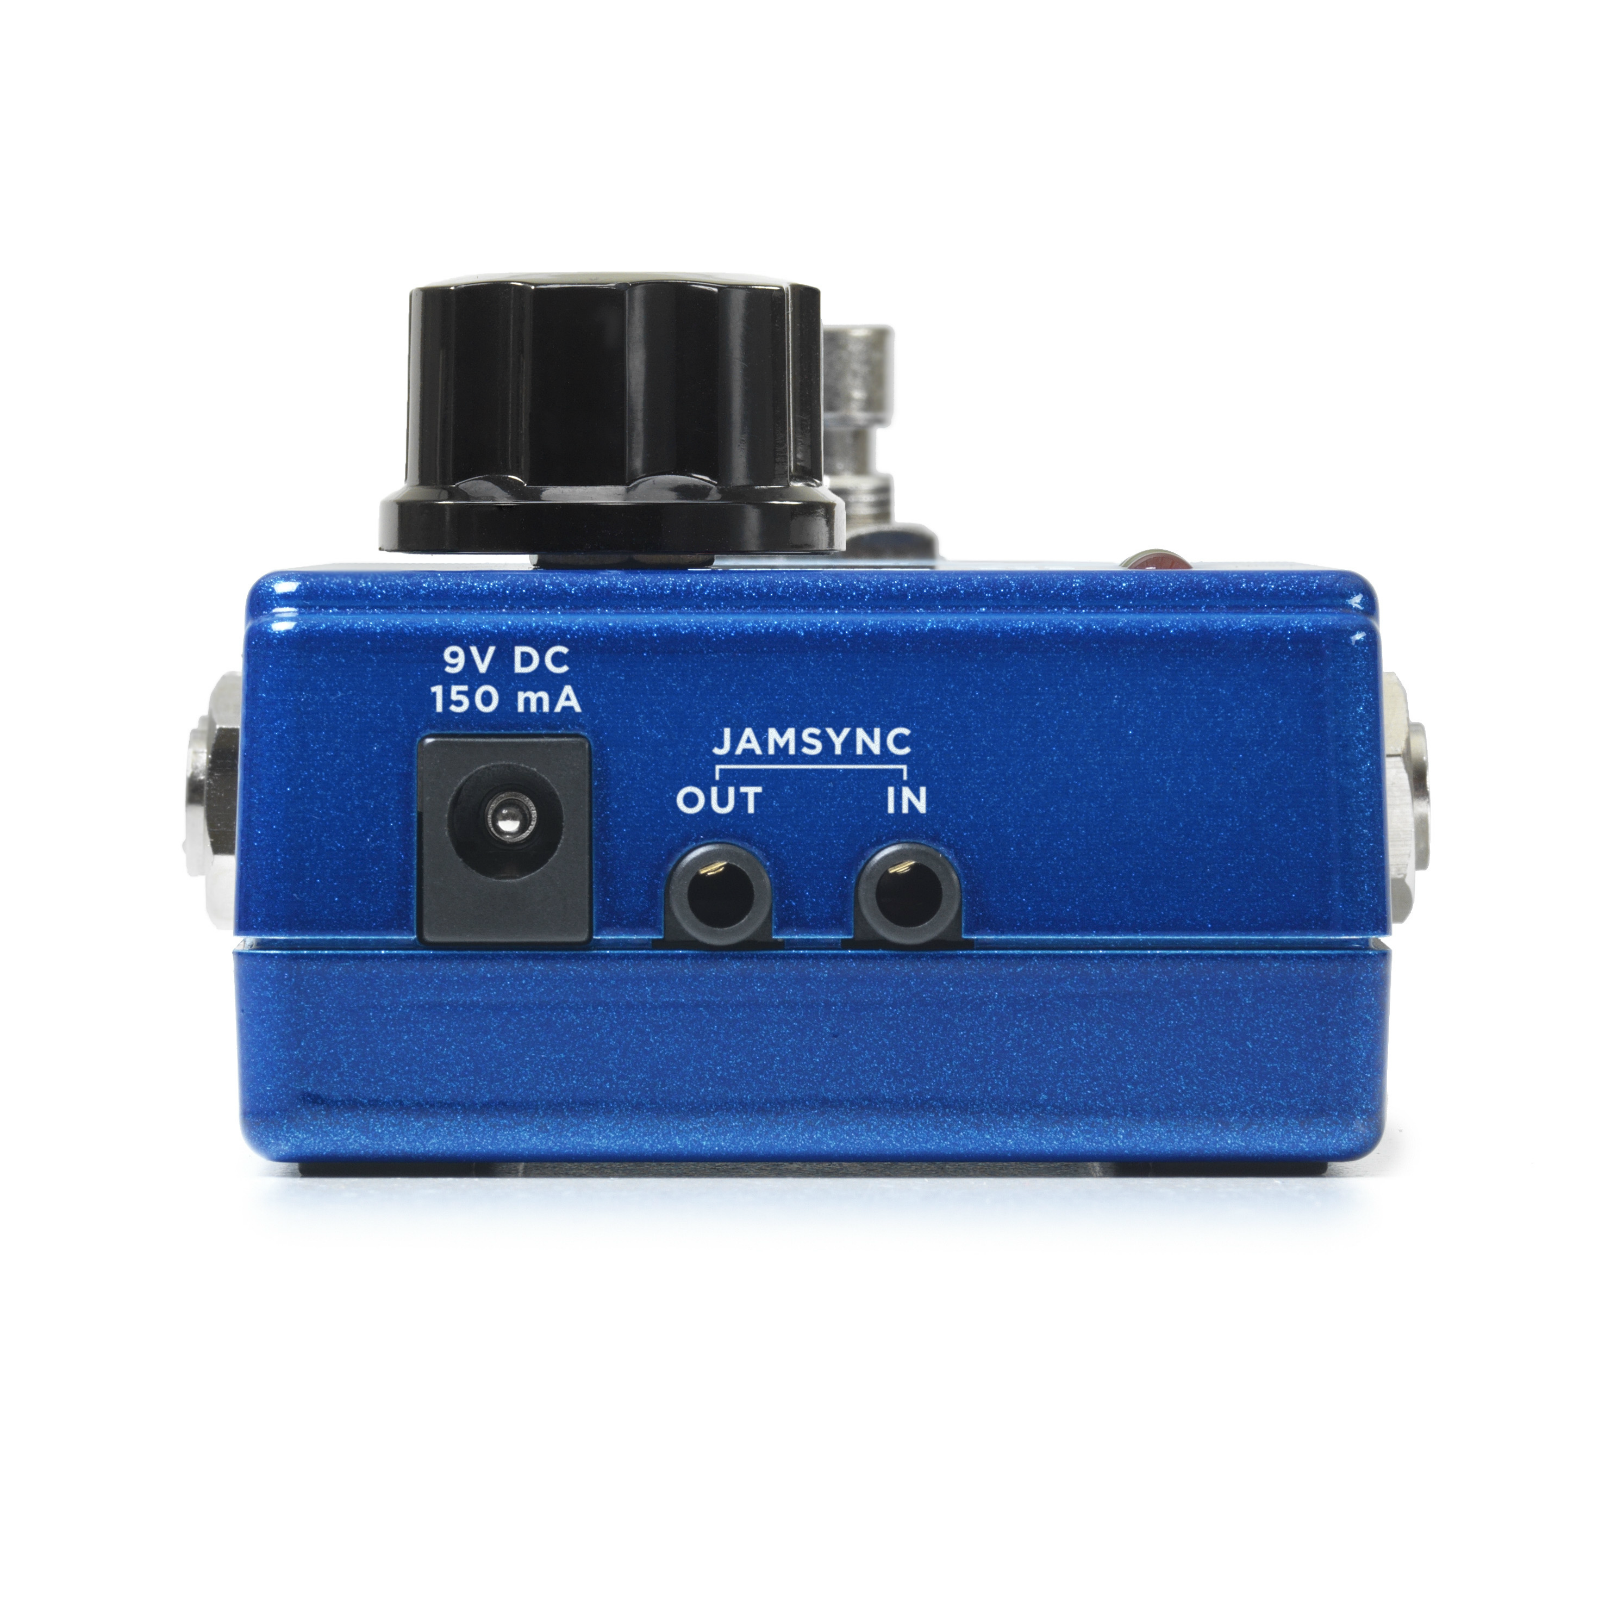 JamMan Express XT (discontinued) - Blue - Compact Stereo Looper with JamSync - Back